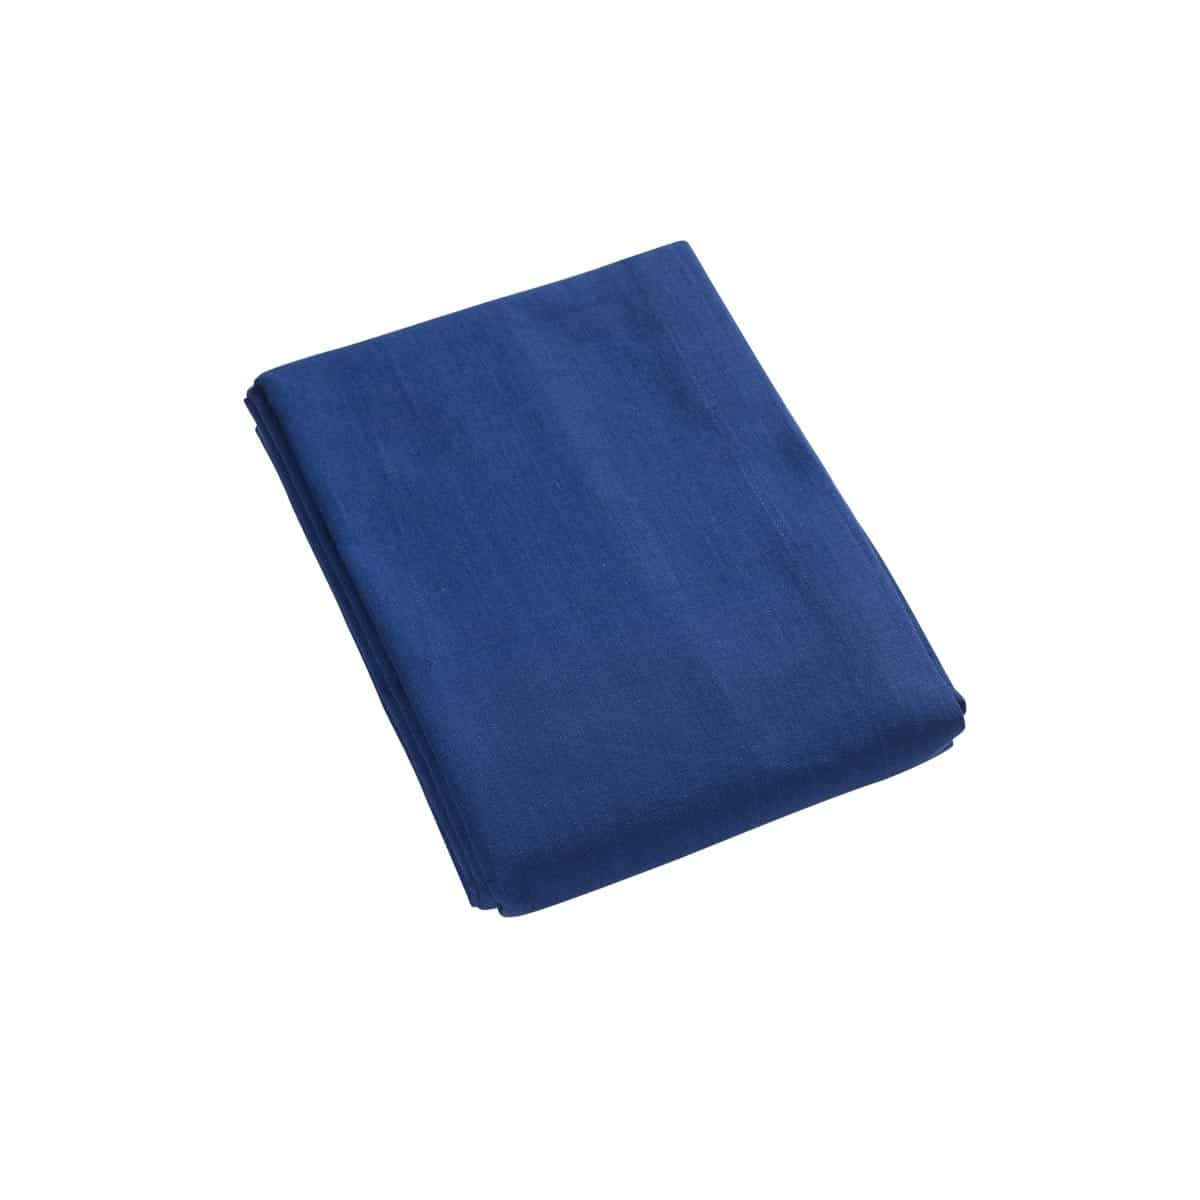 nappe de table super blue serax bleu nuit zeeloft